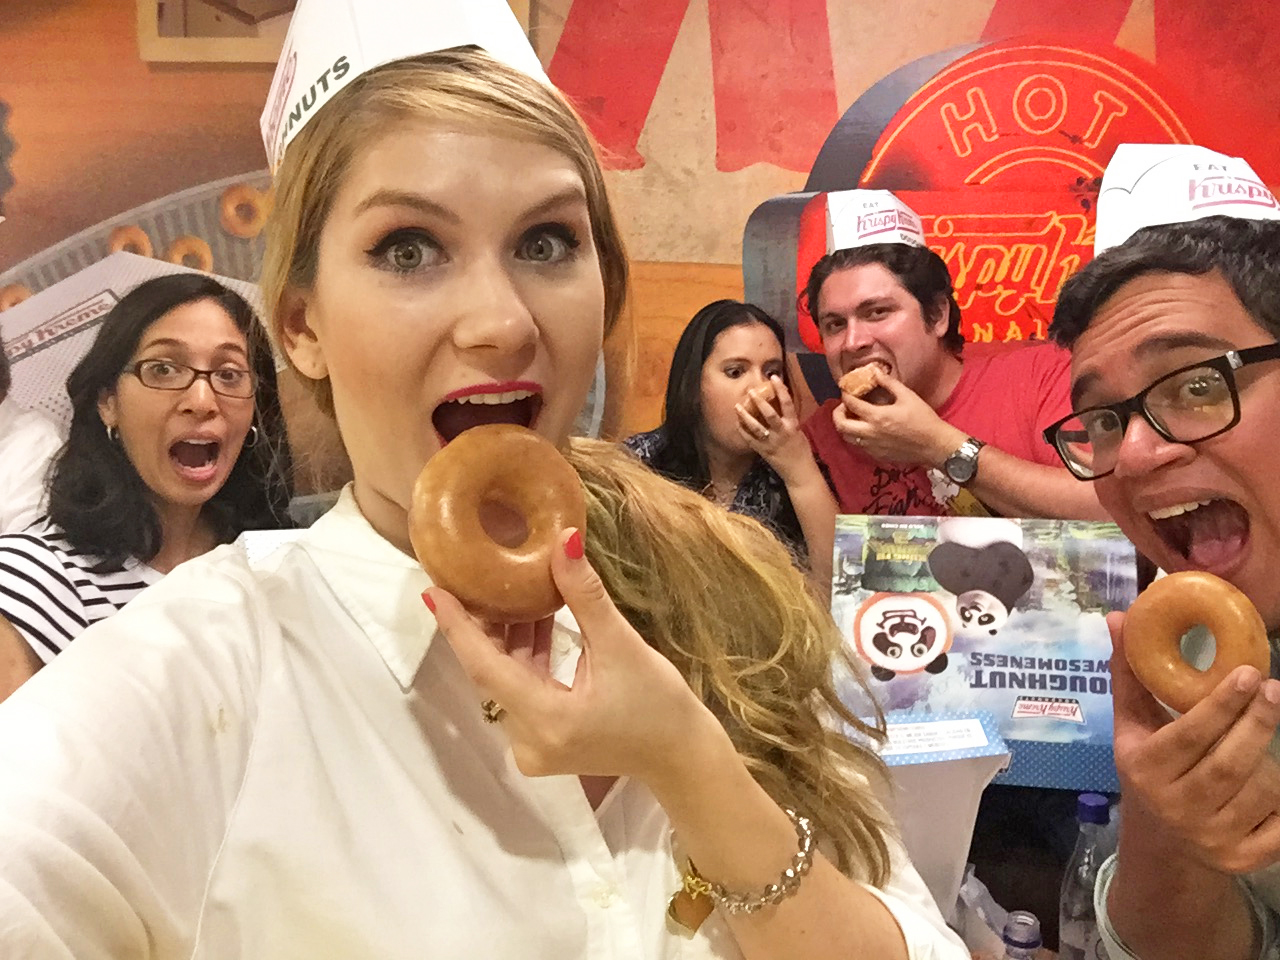 Delicious glazed donuts at the Krispy Kream in Medellin, Colombia